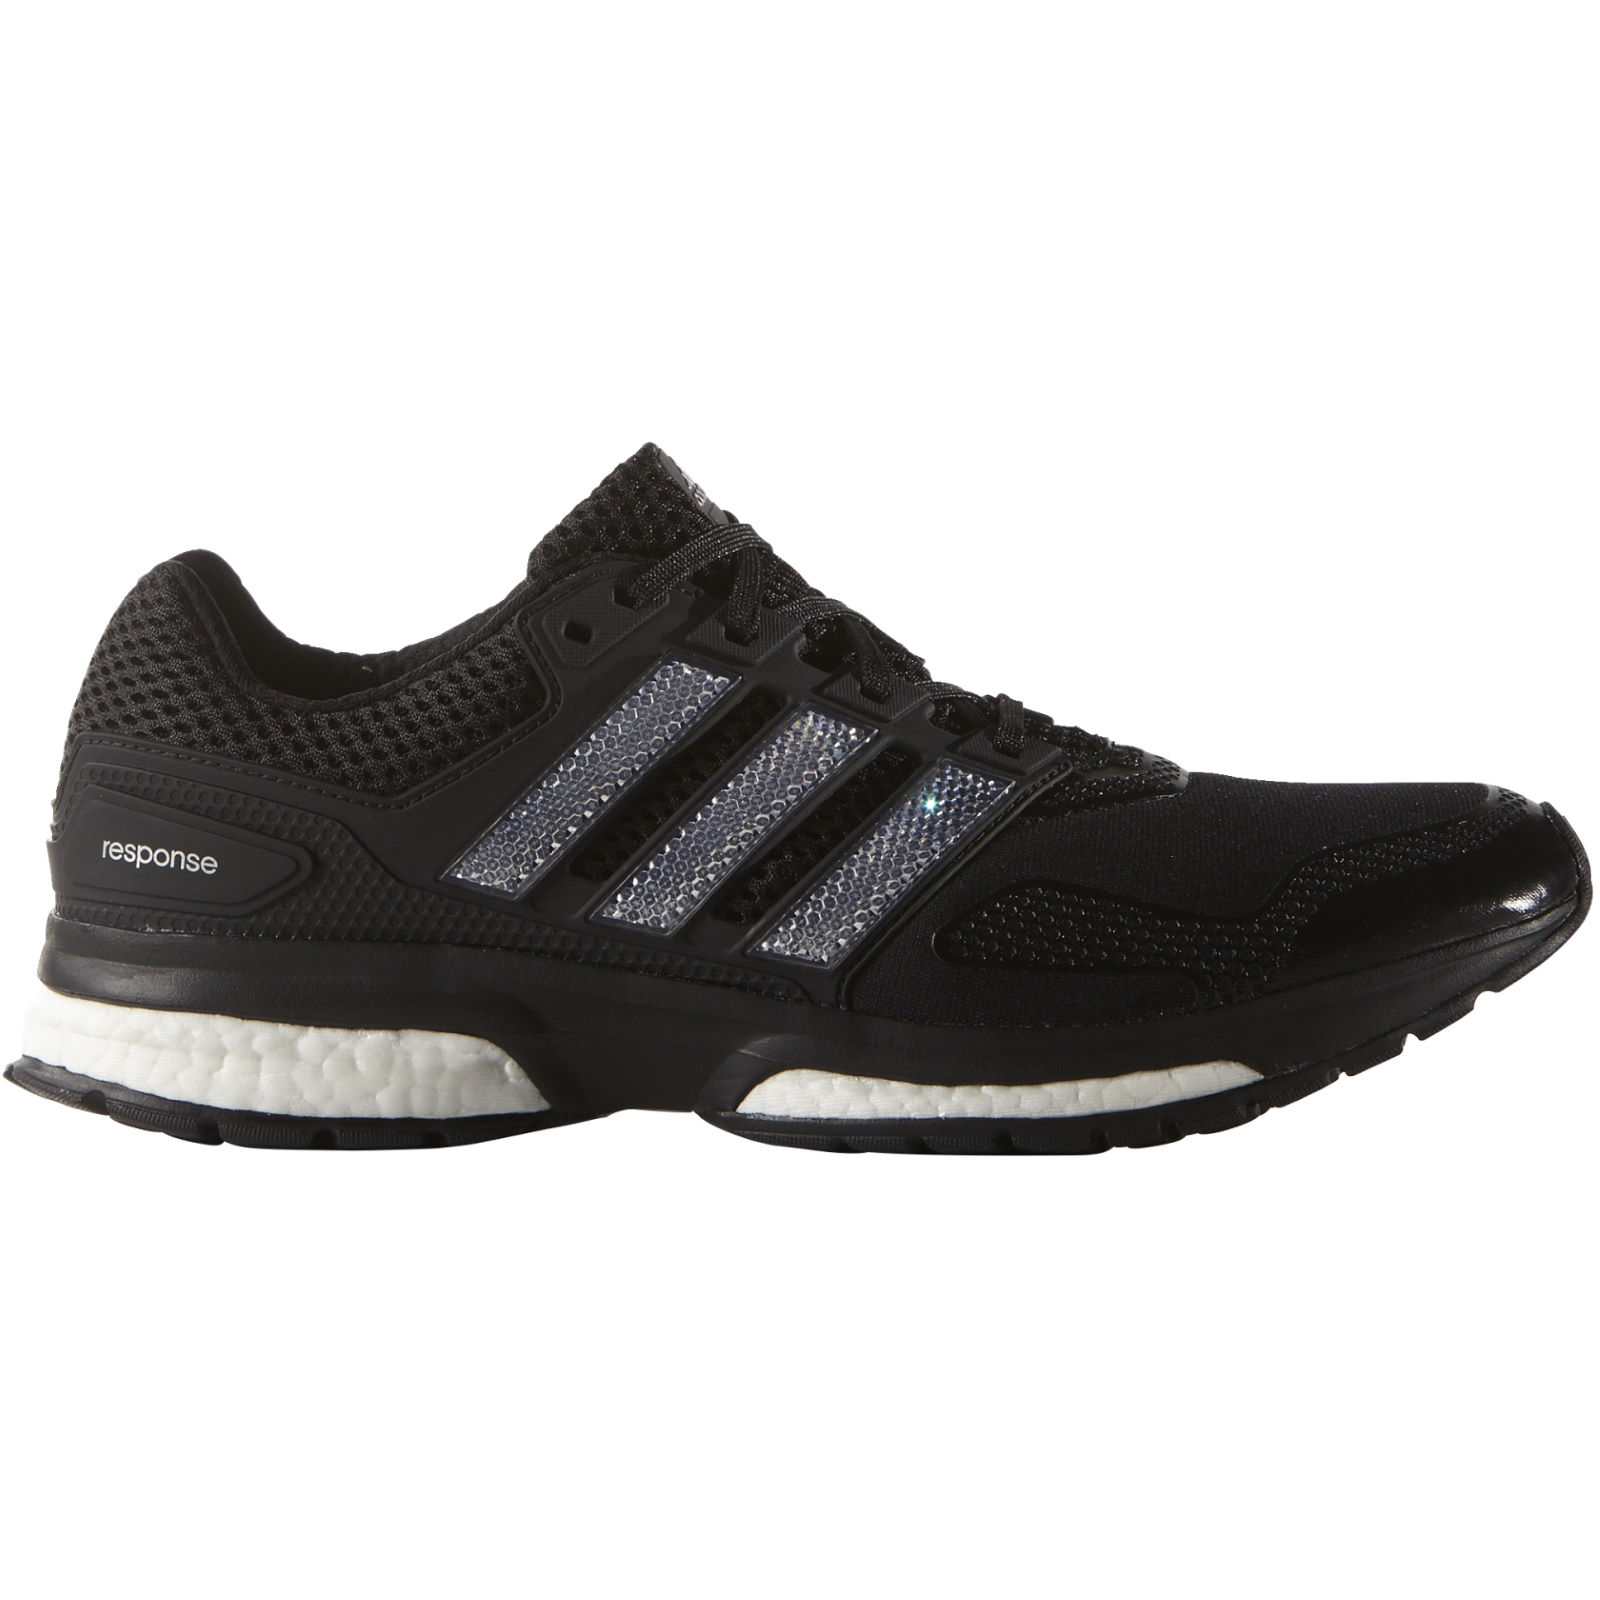 Adidas Response Cushion  Running Shoes